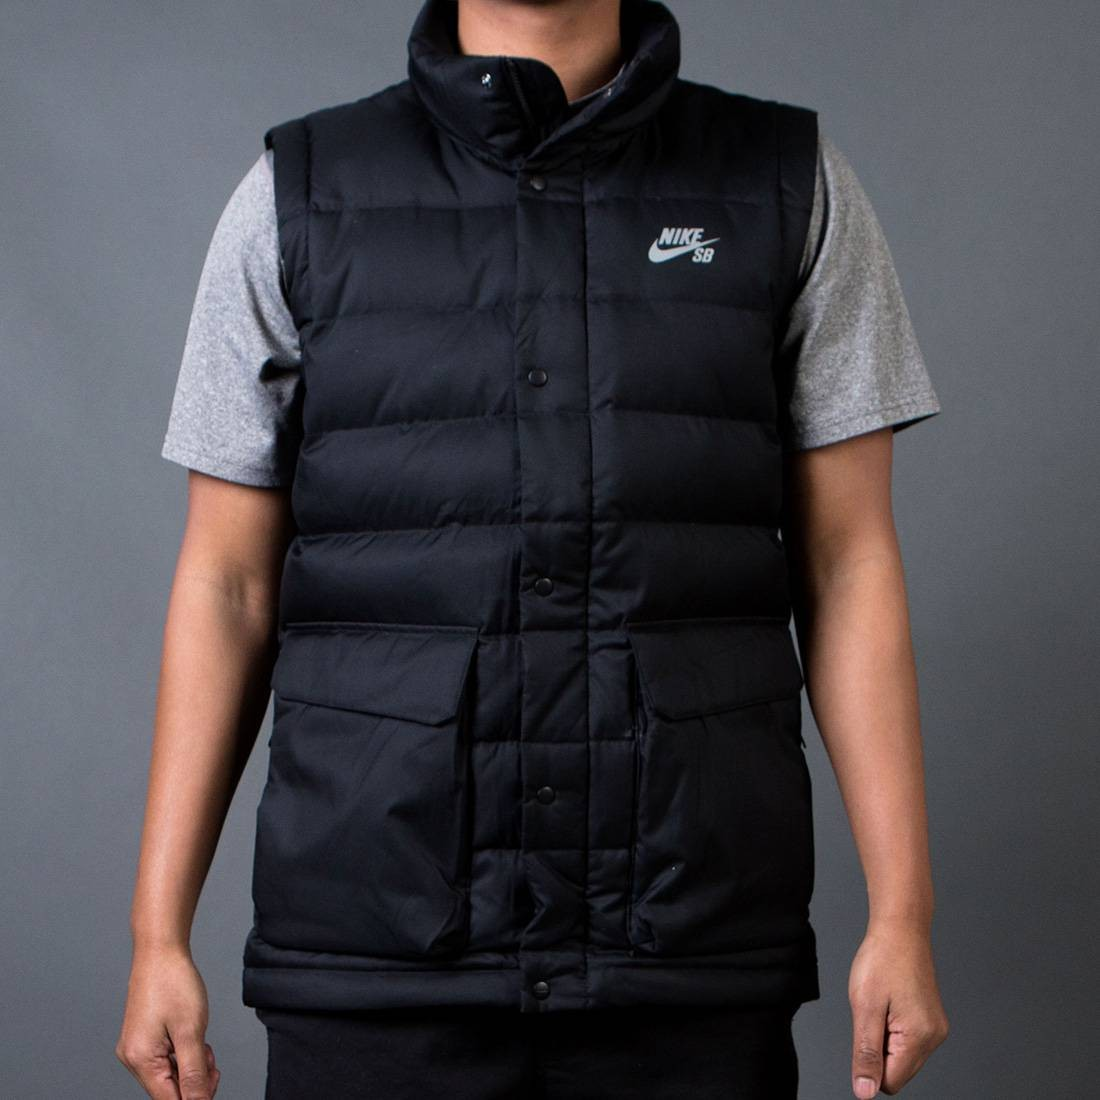 Nike Men SB 550 Down Fill Vest (black)